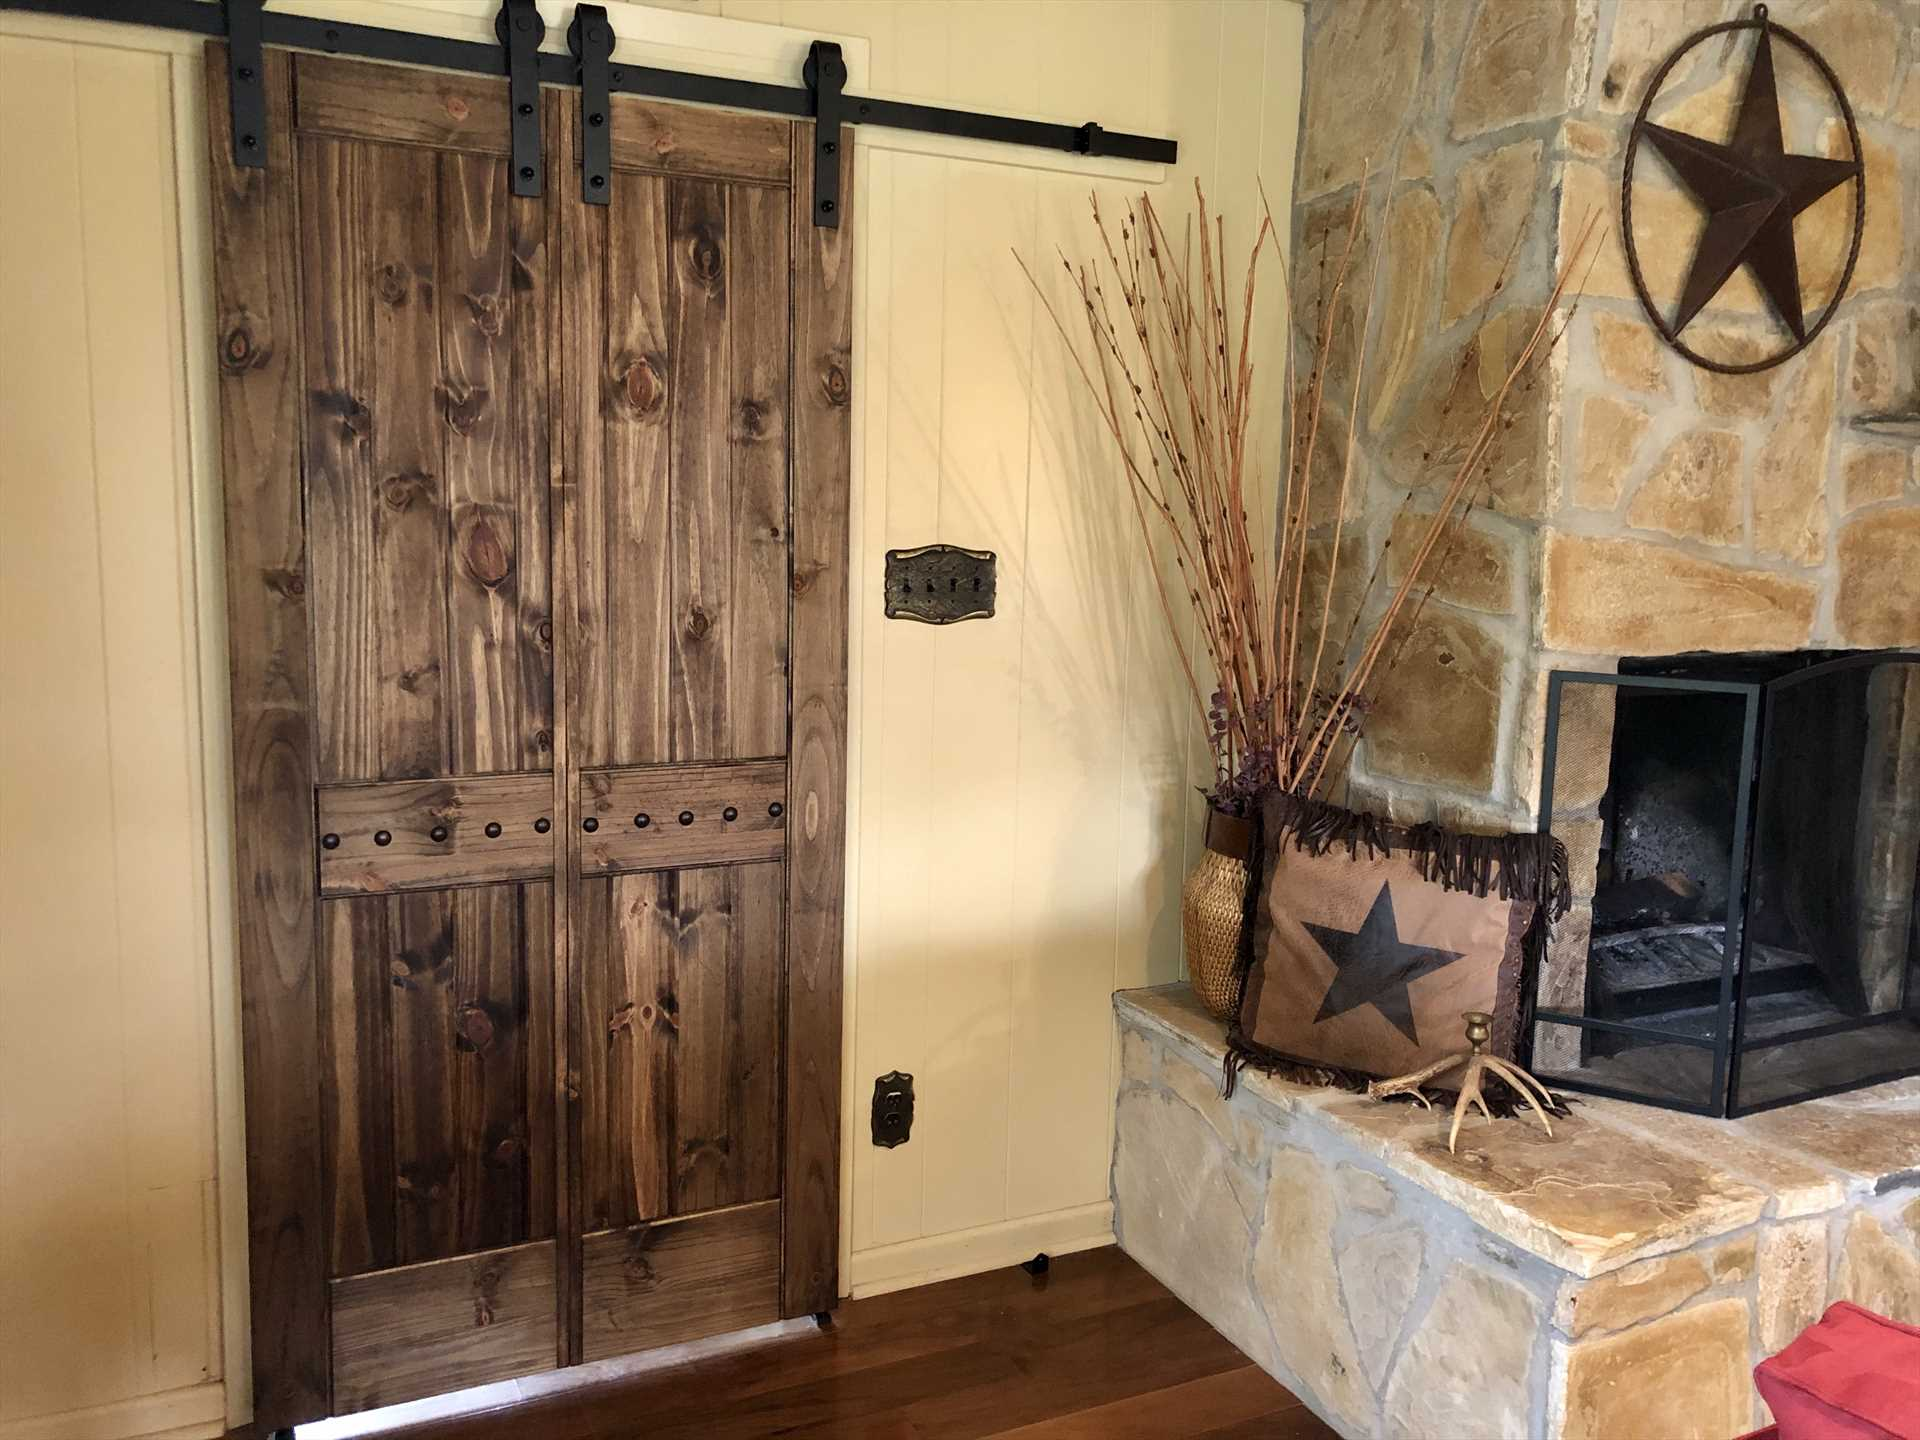 Color, texture, and decorative details were all considered when preparing this wonderful holiday home..